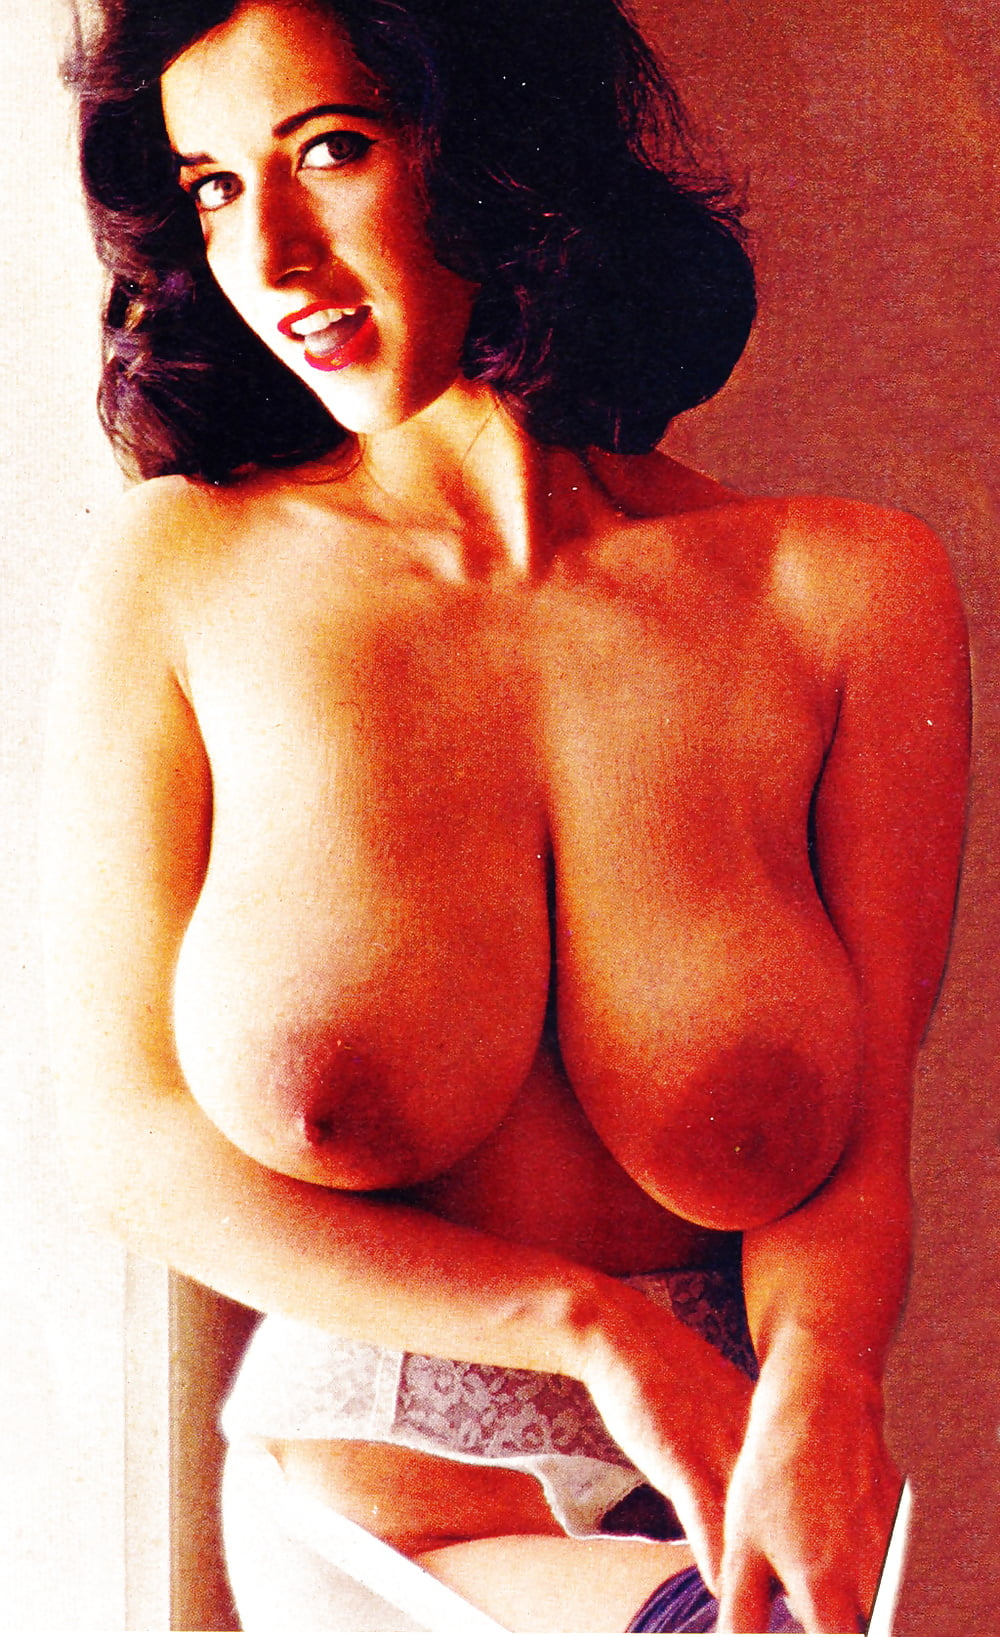 Retro huge naked breasts, pilipino pusyfucking girl pics